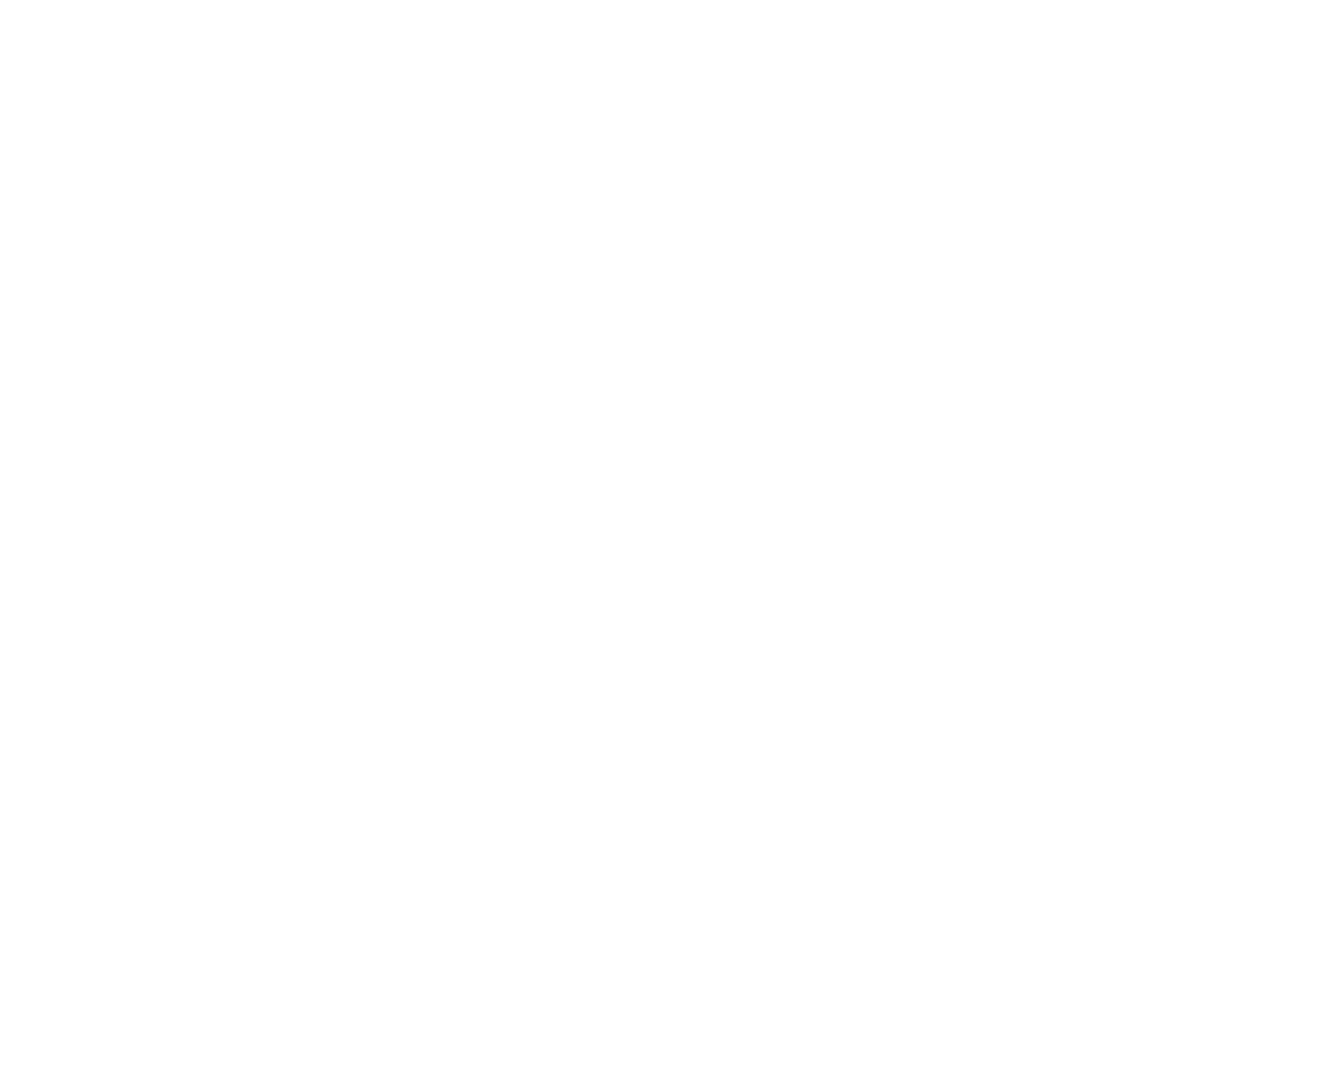 ENEROC logo in white